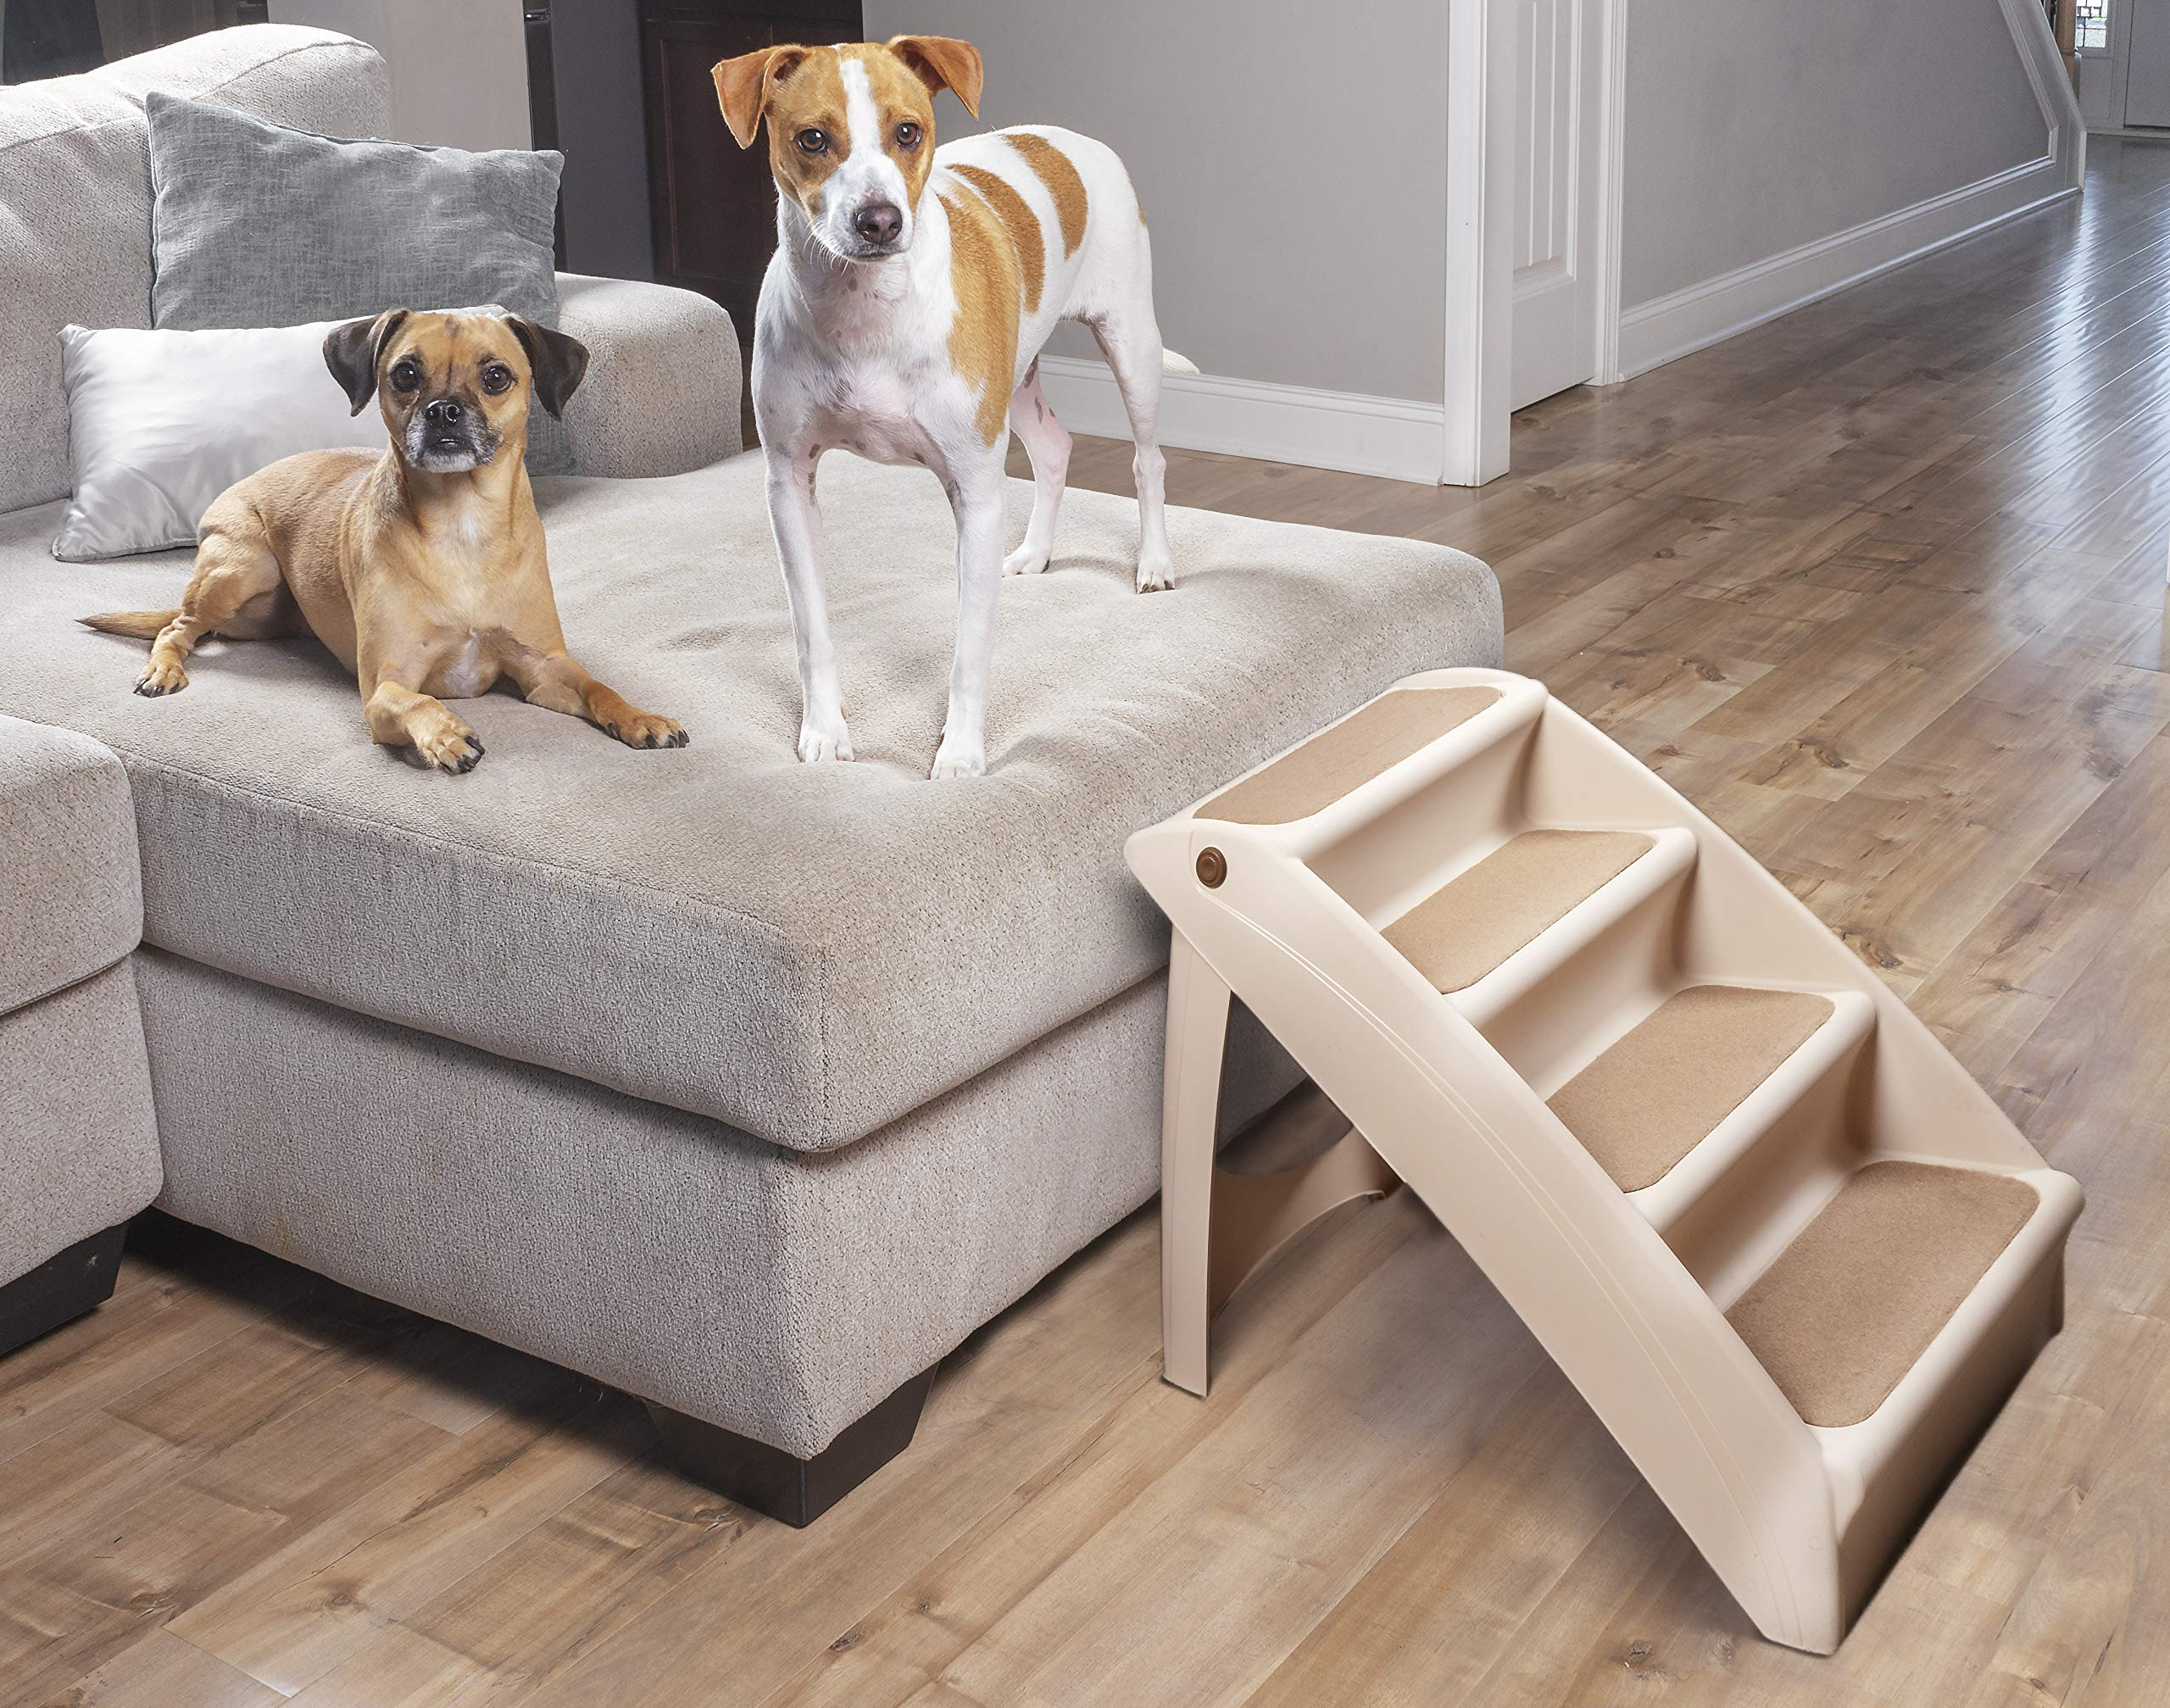 dog supplies online petsafe solvit pupstep plus pet stairs, foldable steps for dogs and cats, best for small to medium pets